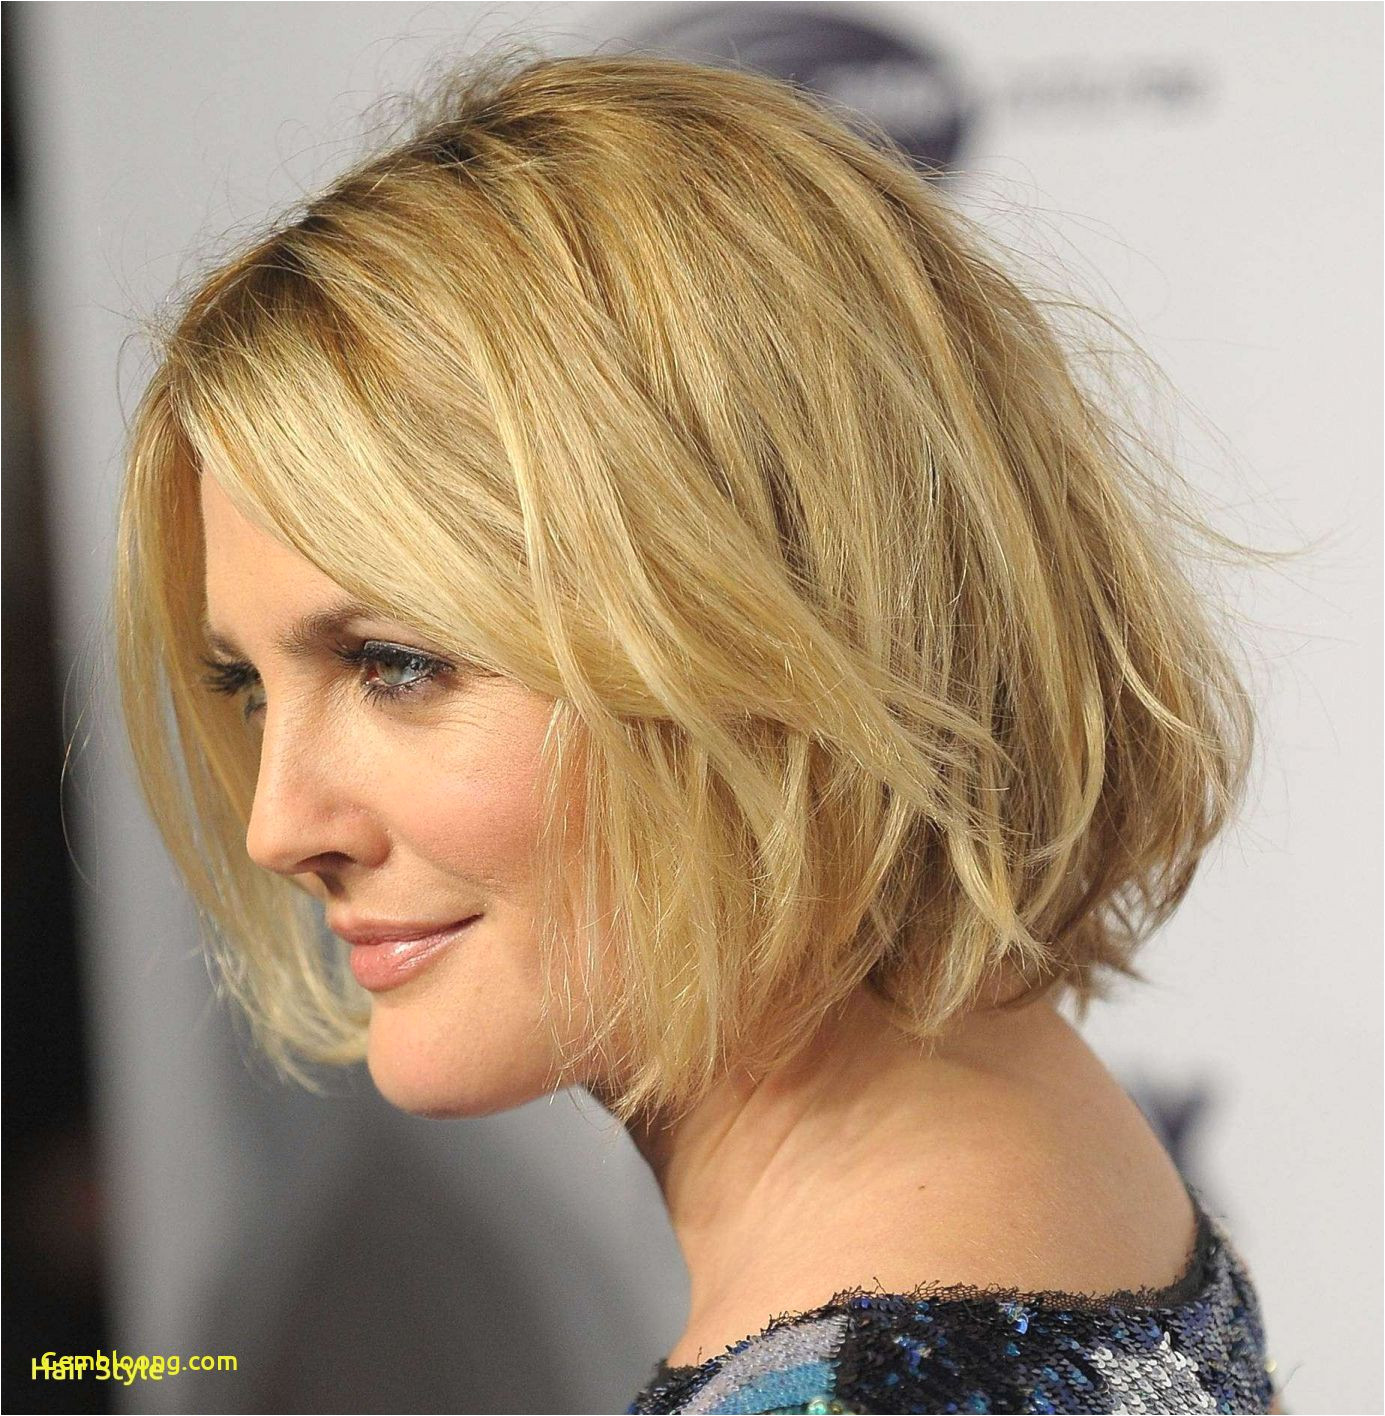 layered hair styles elegant medium length bob hairstyles new i pinimg 1200x 0d 60 8a stunning